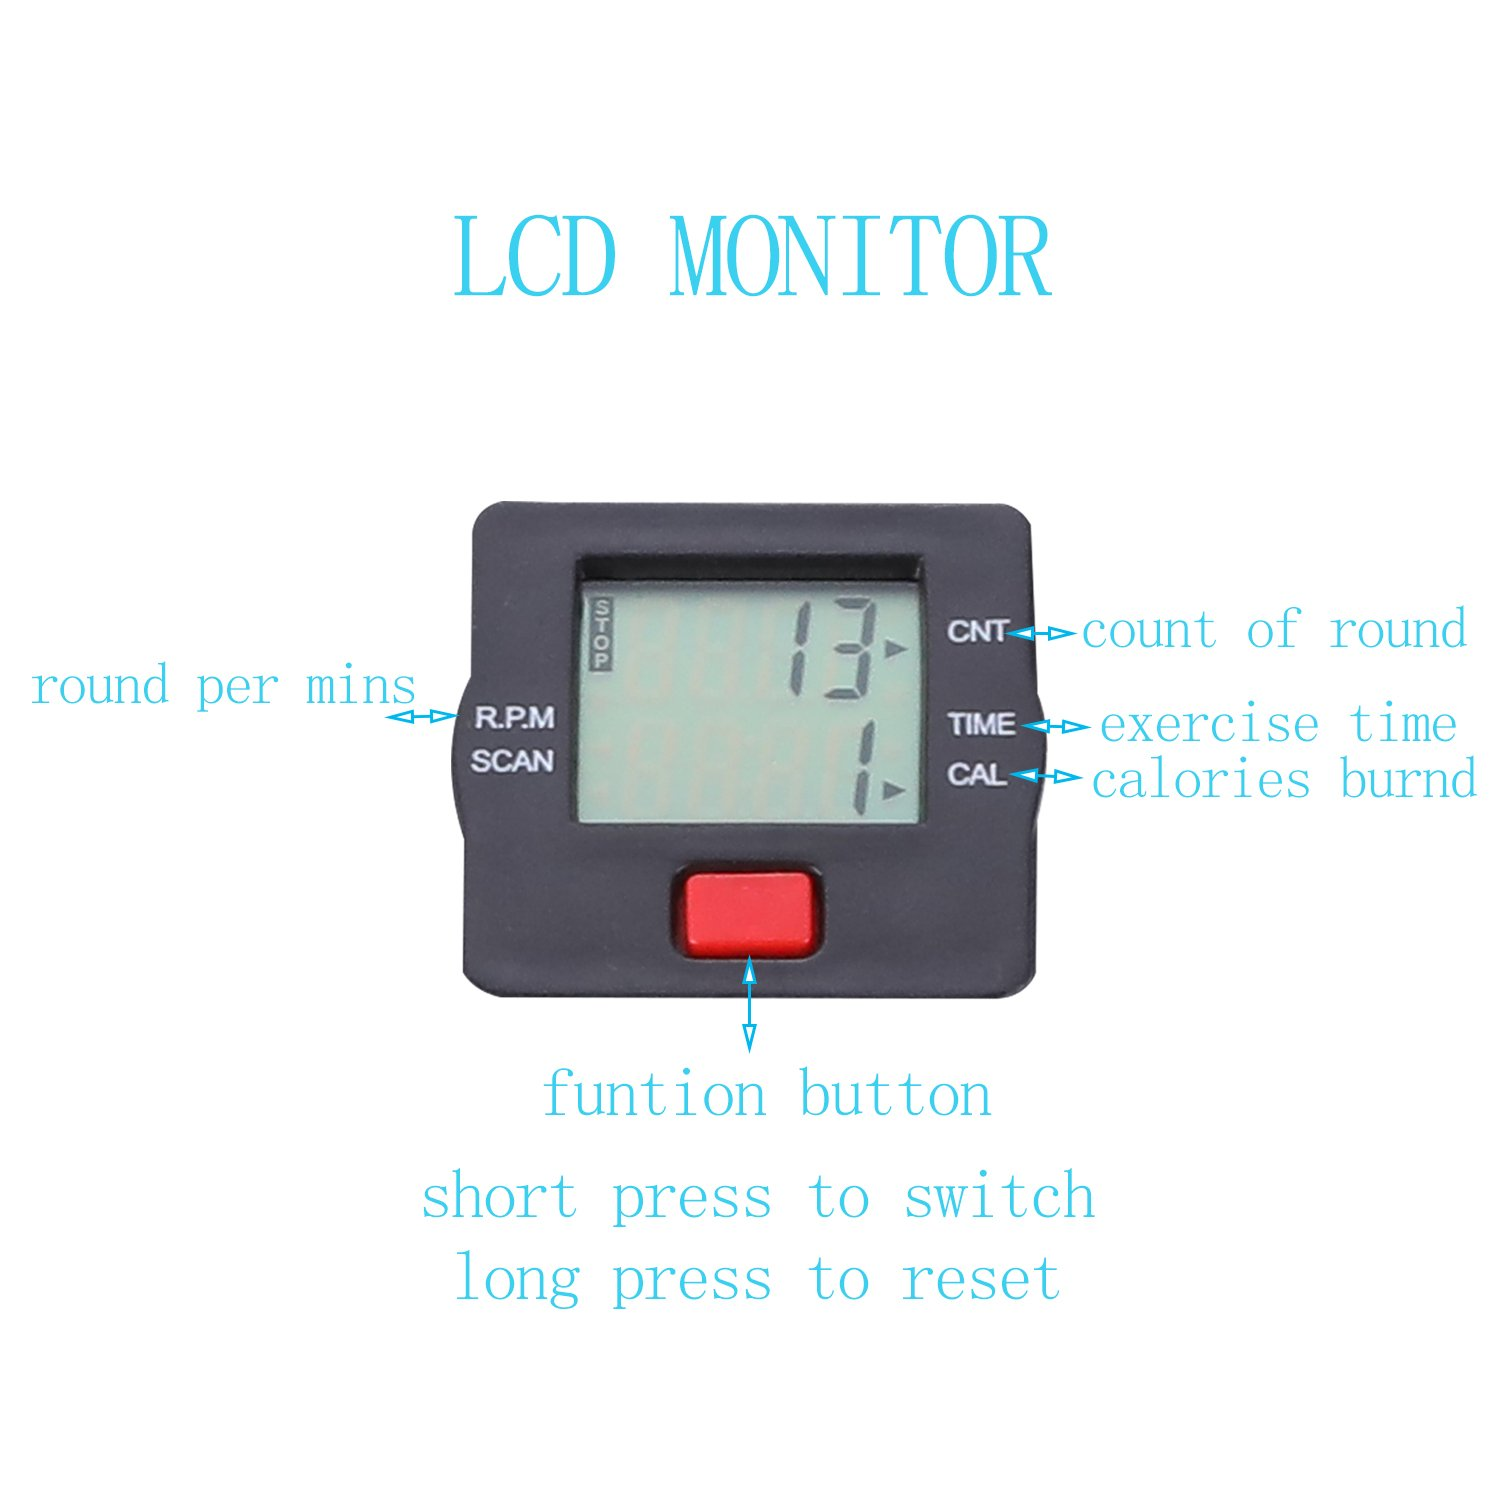 TODO Pedal Exerciser Foot Peddler Desk Bike Foldable with LCD Monitor by TODO (Image #2)